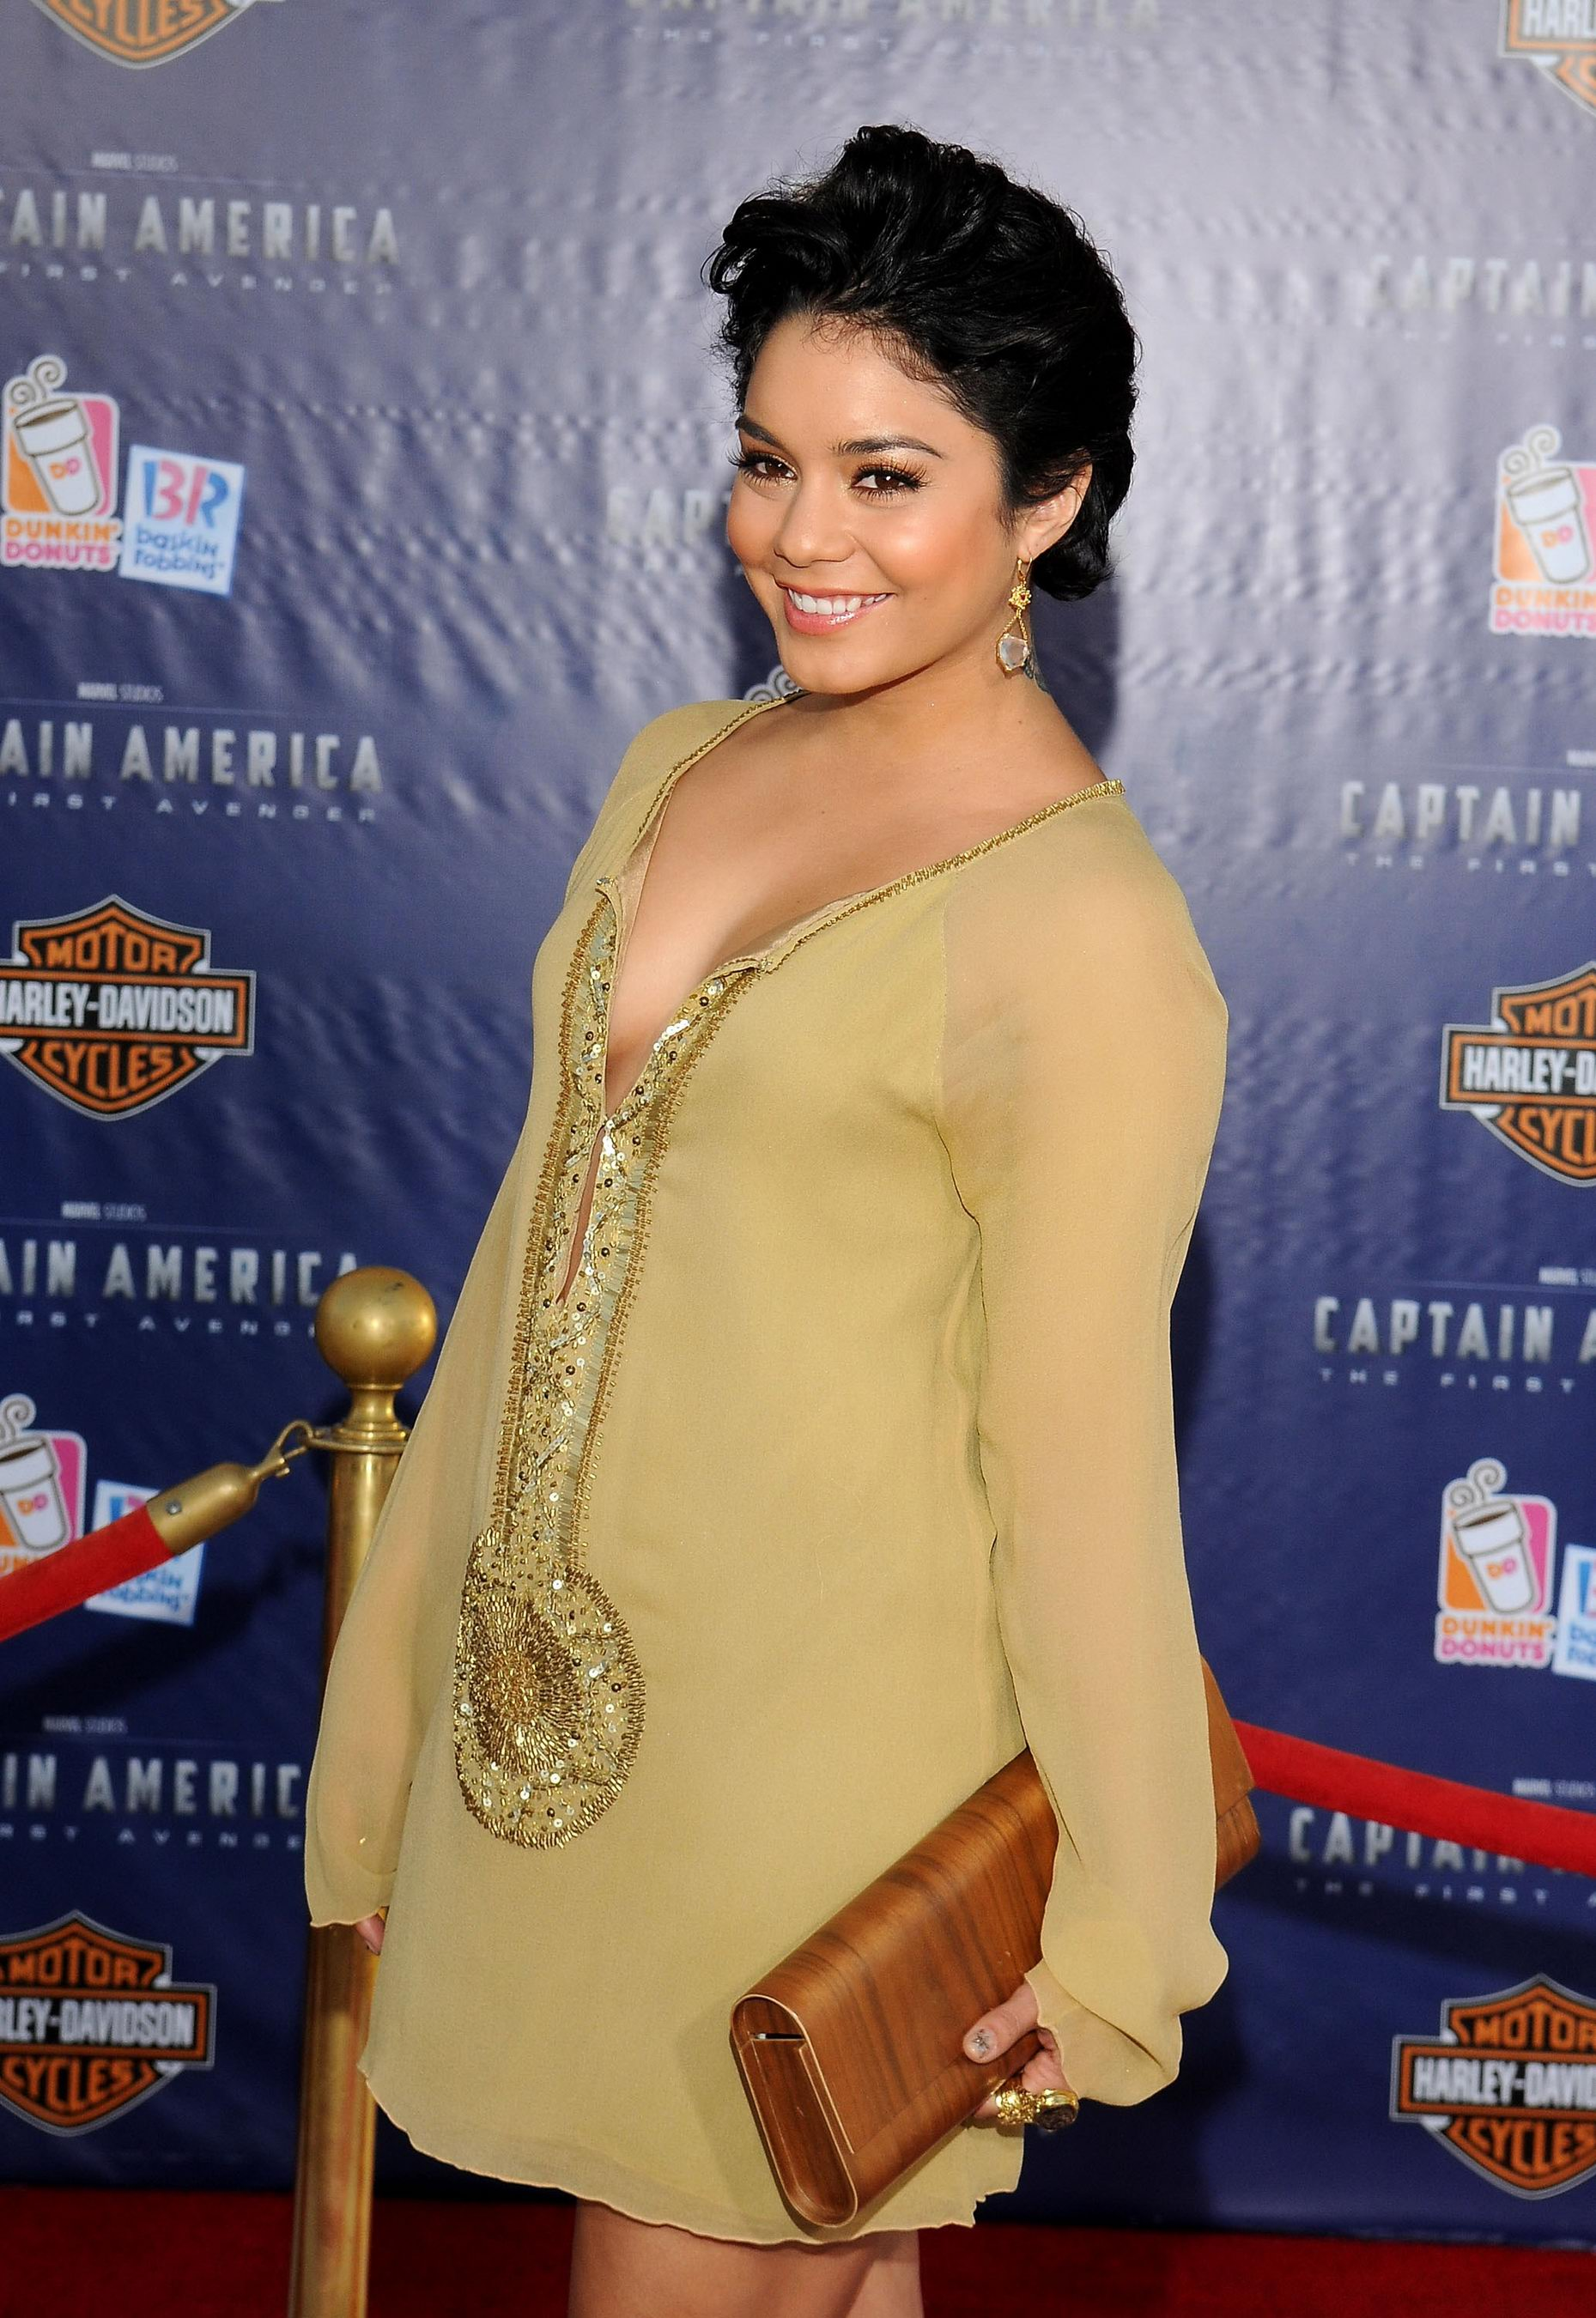 47334_VanessaHudgens_CaptainAmericapremiere_Hollywood_190711_017_122_548lo.jpg